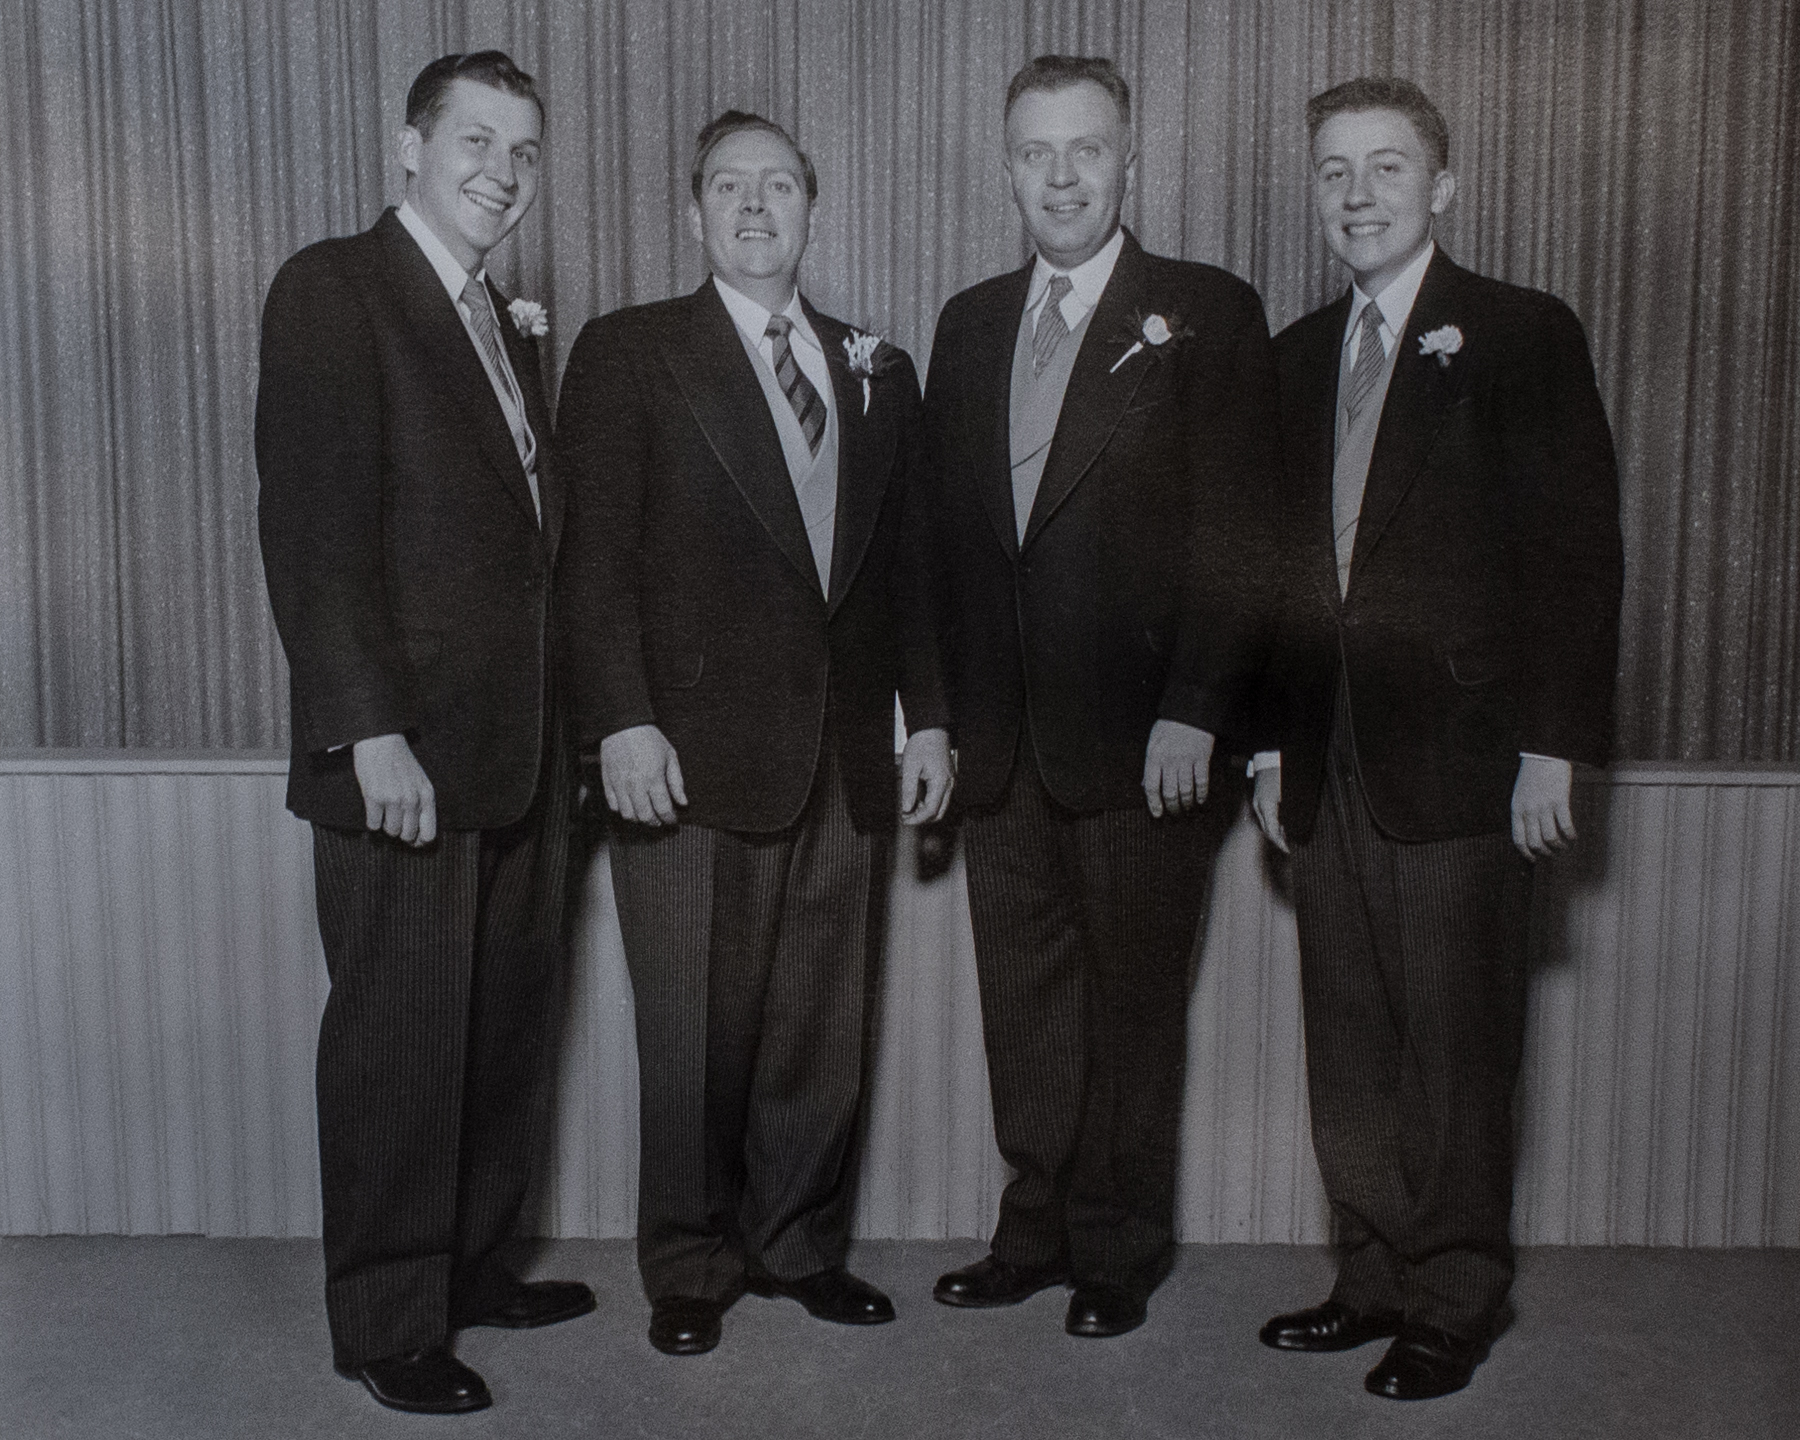 Dad with his Best Man and new brothers-in-law.